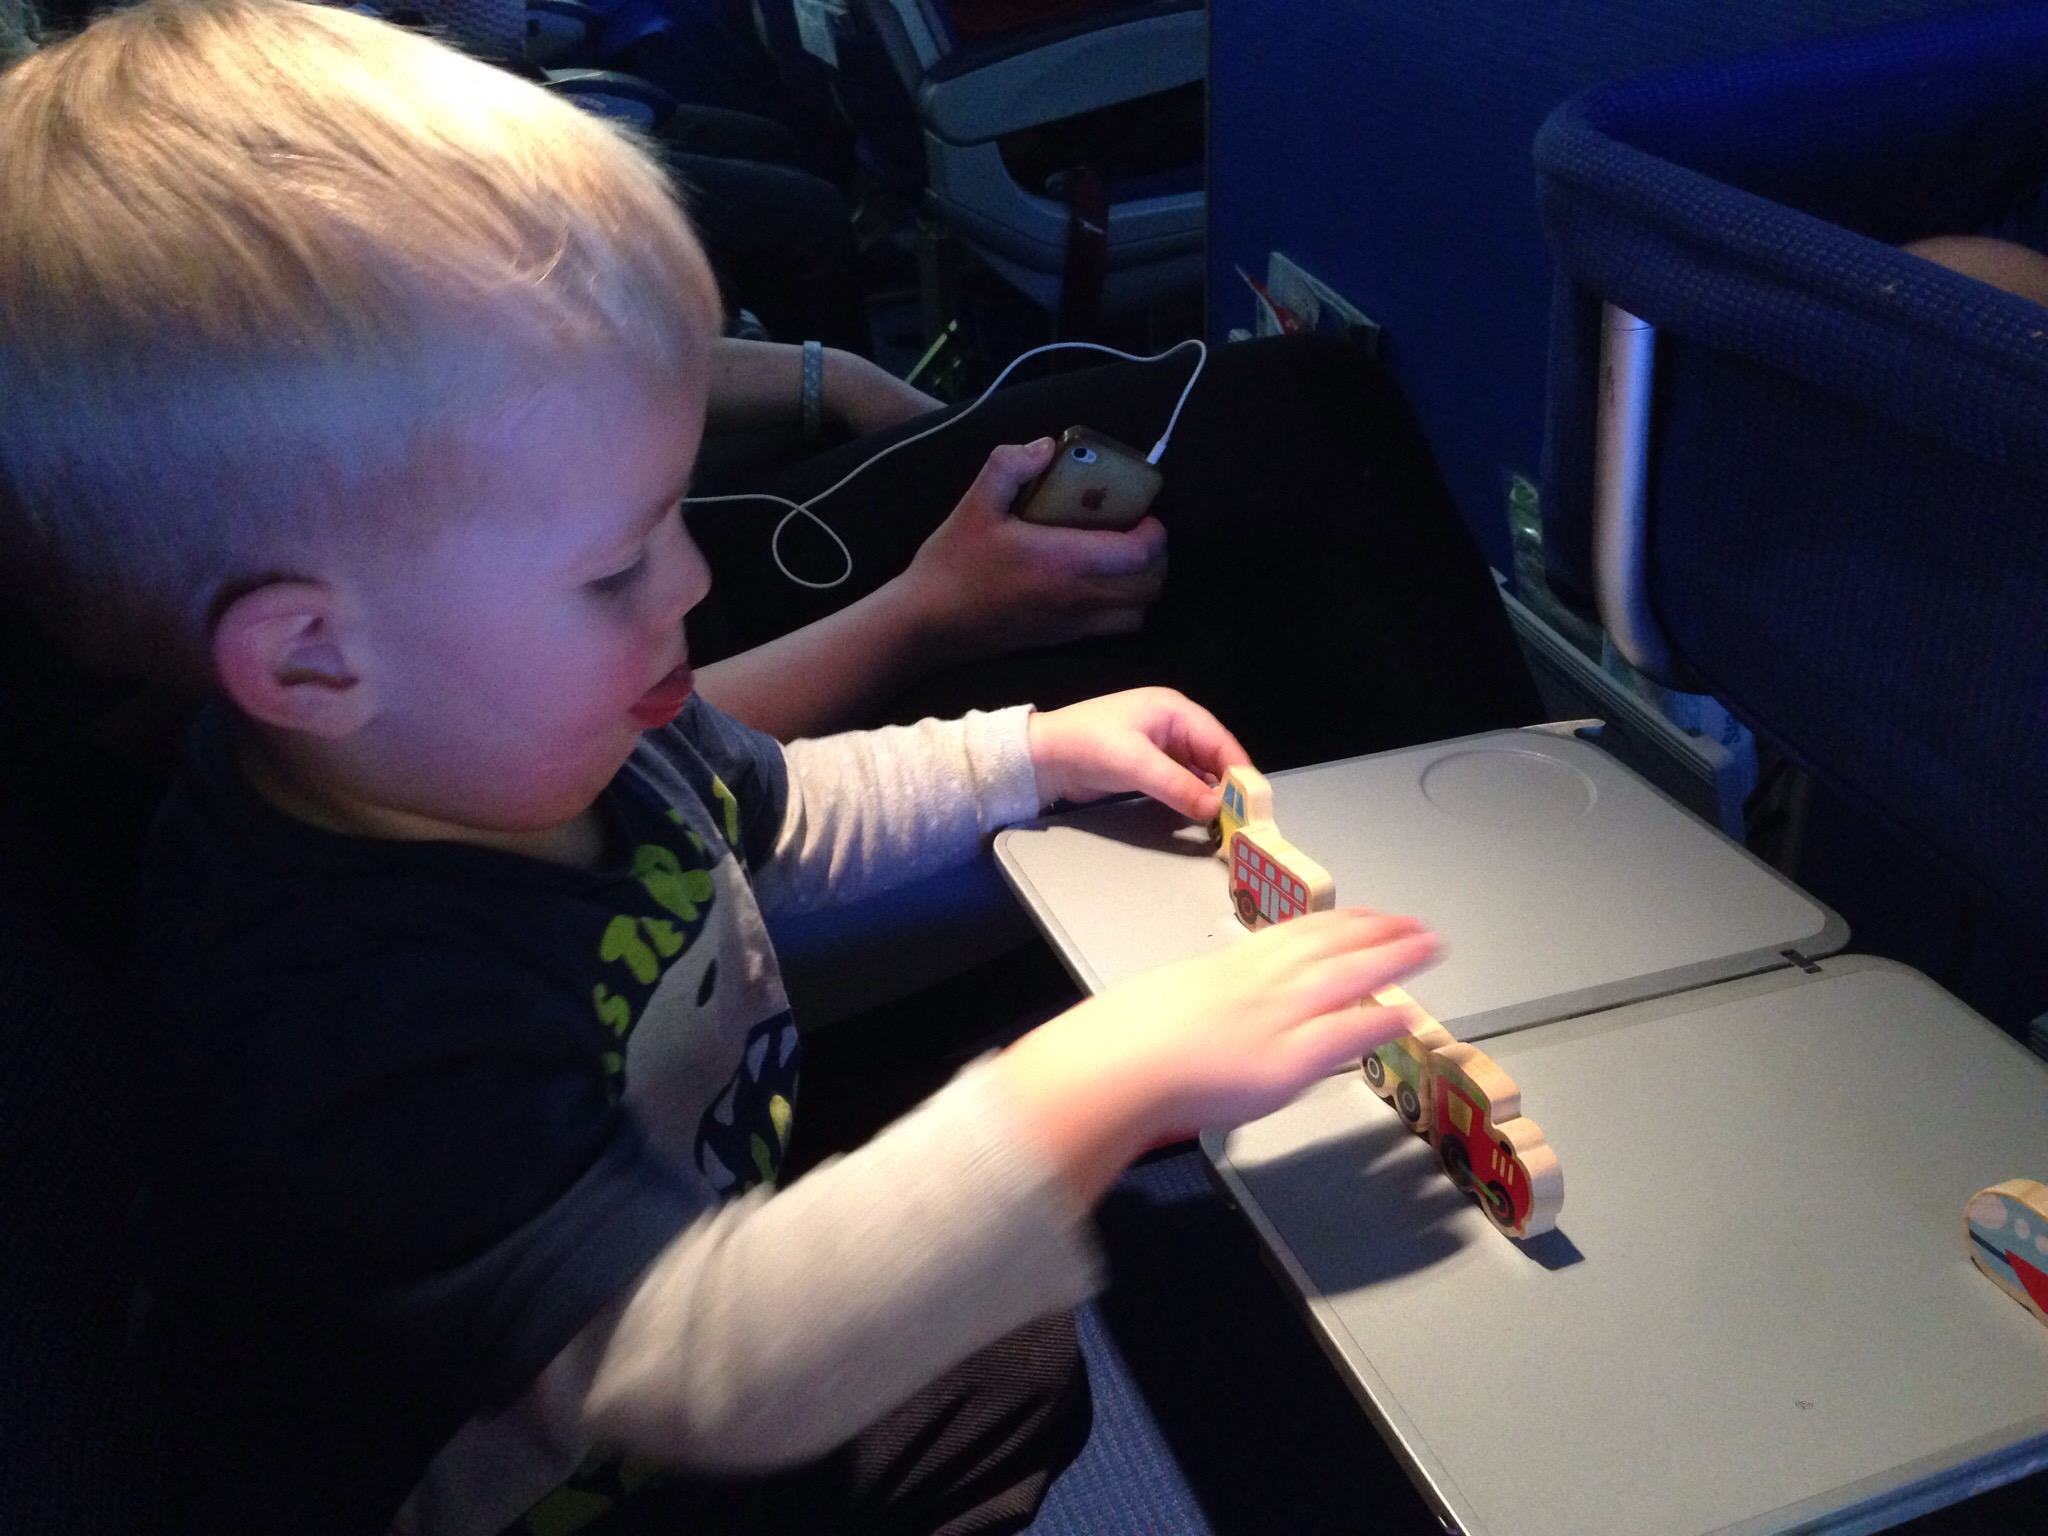 tips to entertain a toddler during a flight - my toddler playing small toys on aeroplane